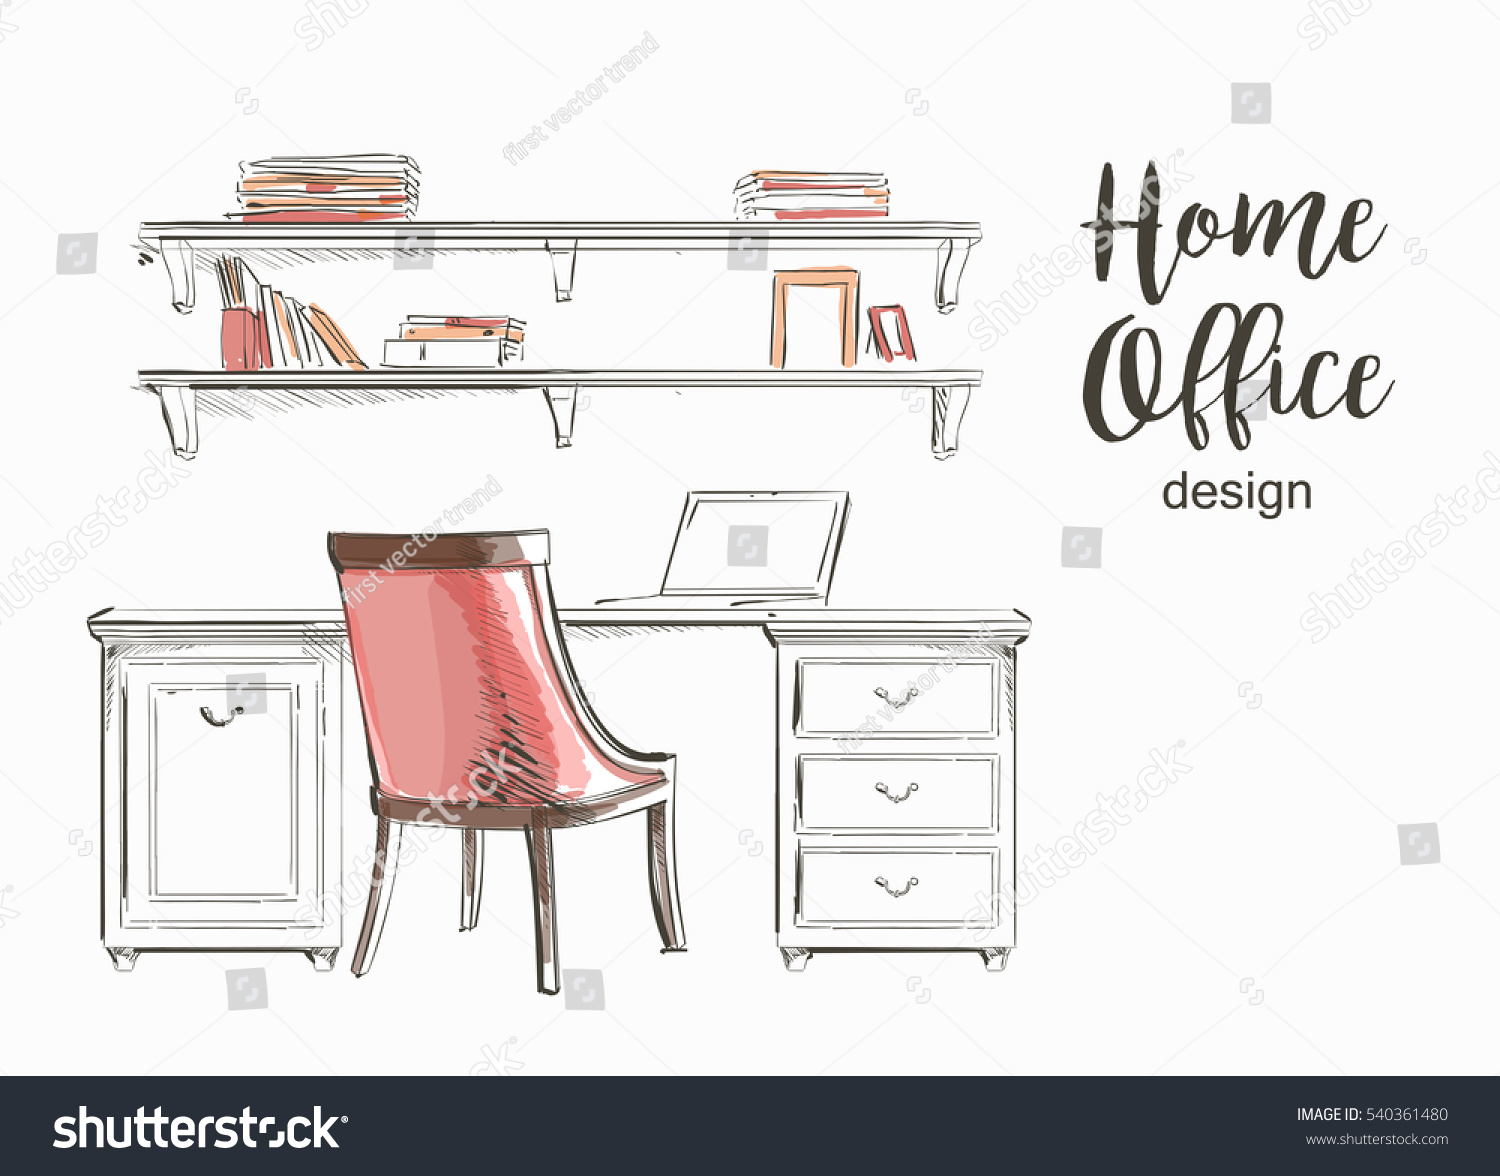 Interior wooden shelves free vector - Set Of Hand Drawn Classic Home Office Interior Work Table Wooden Shelf Chair Vector Sketch Store